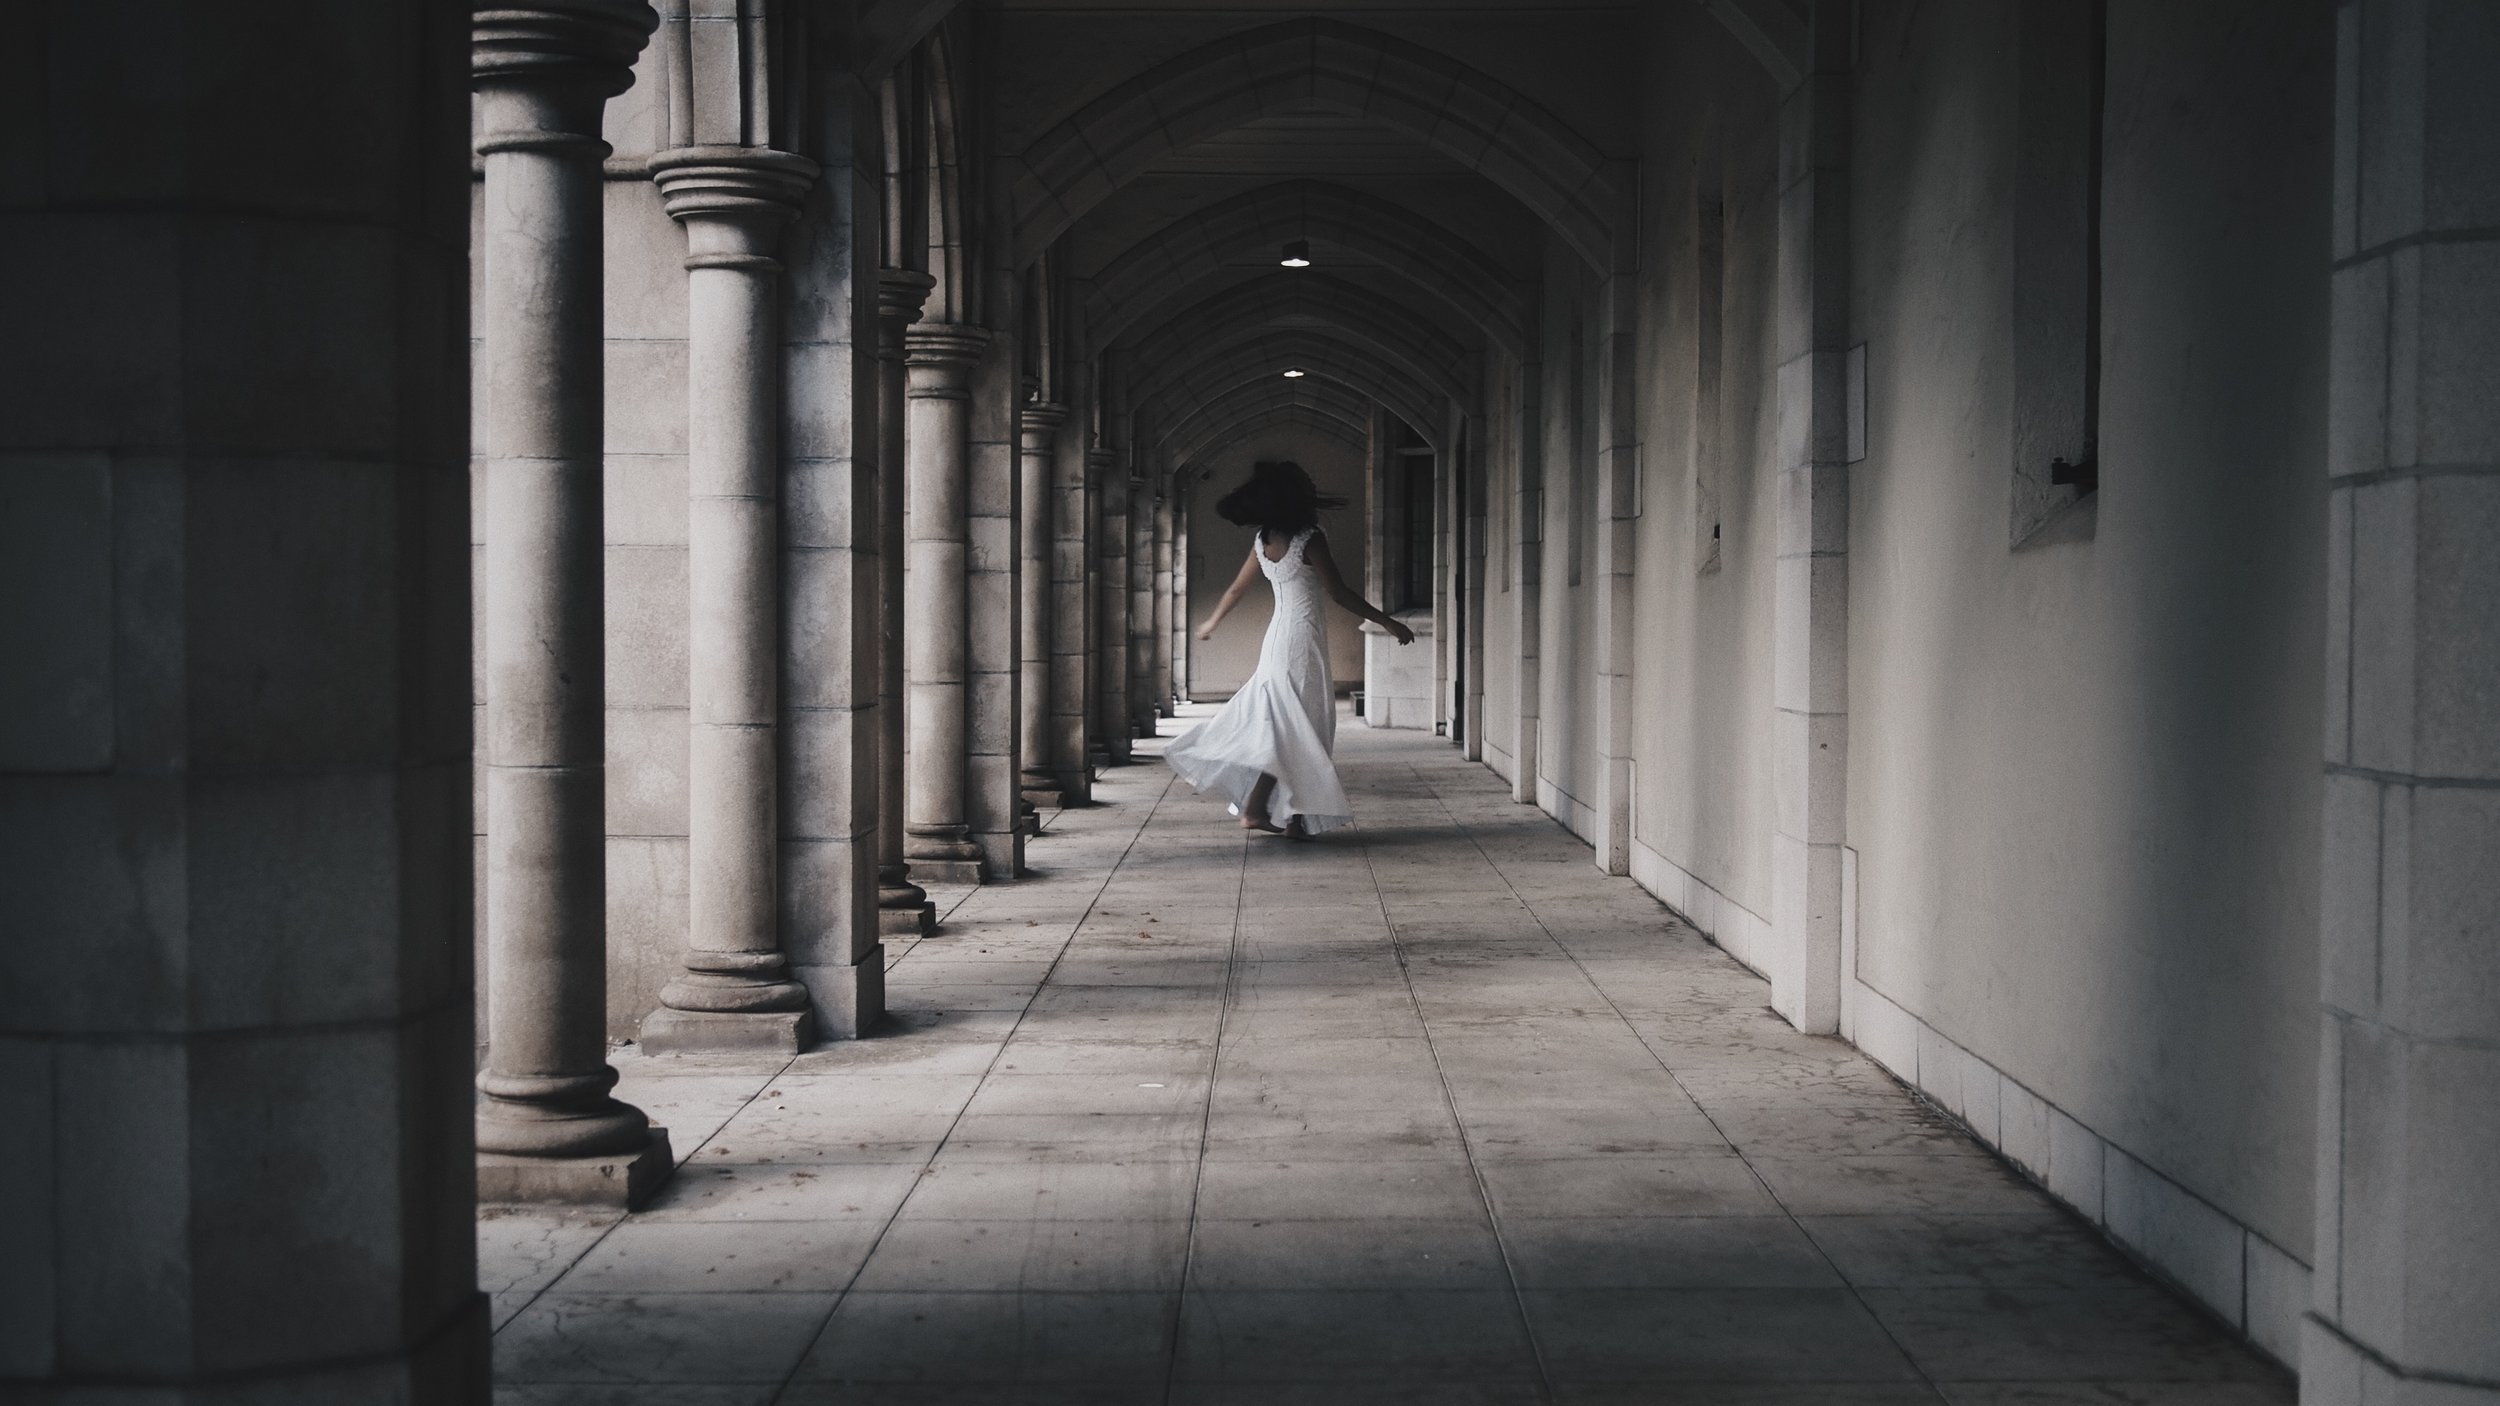 An eerie, ghostly image of a girl in a white dress